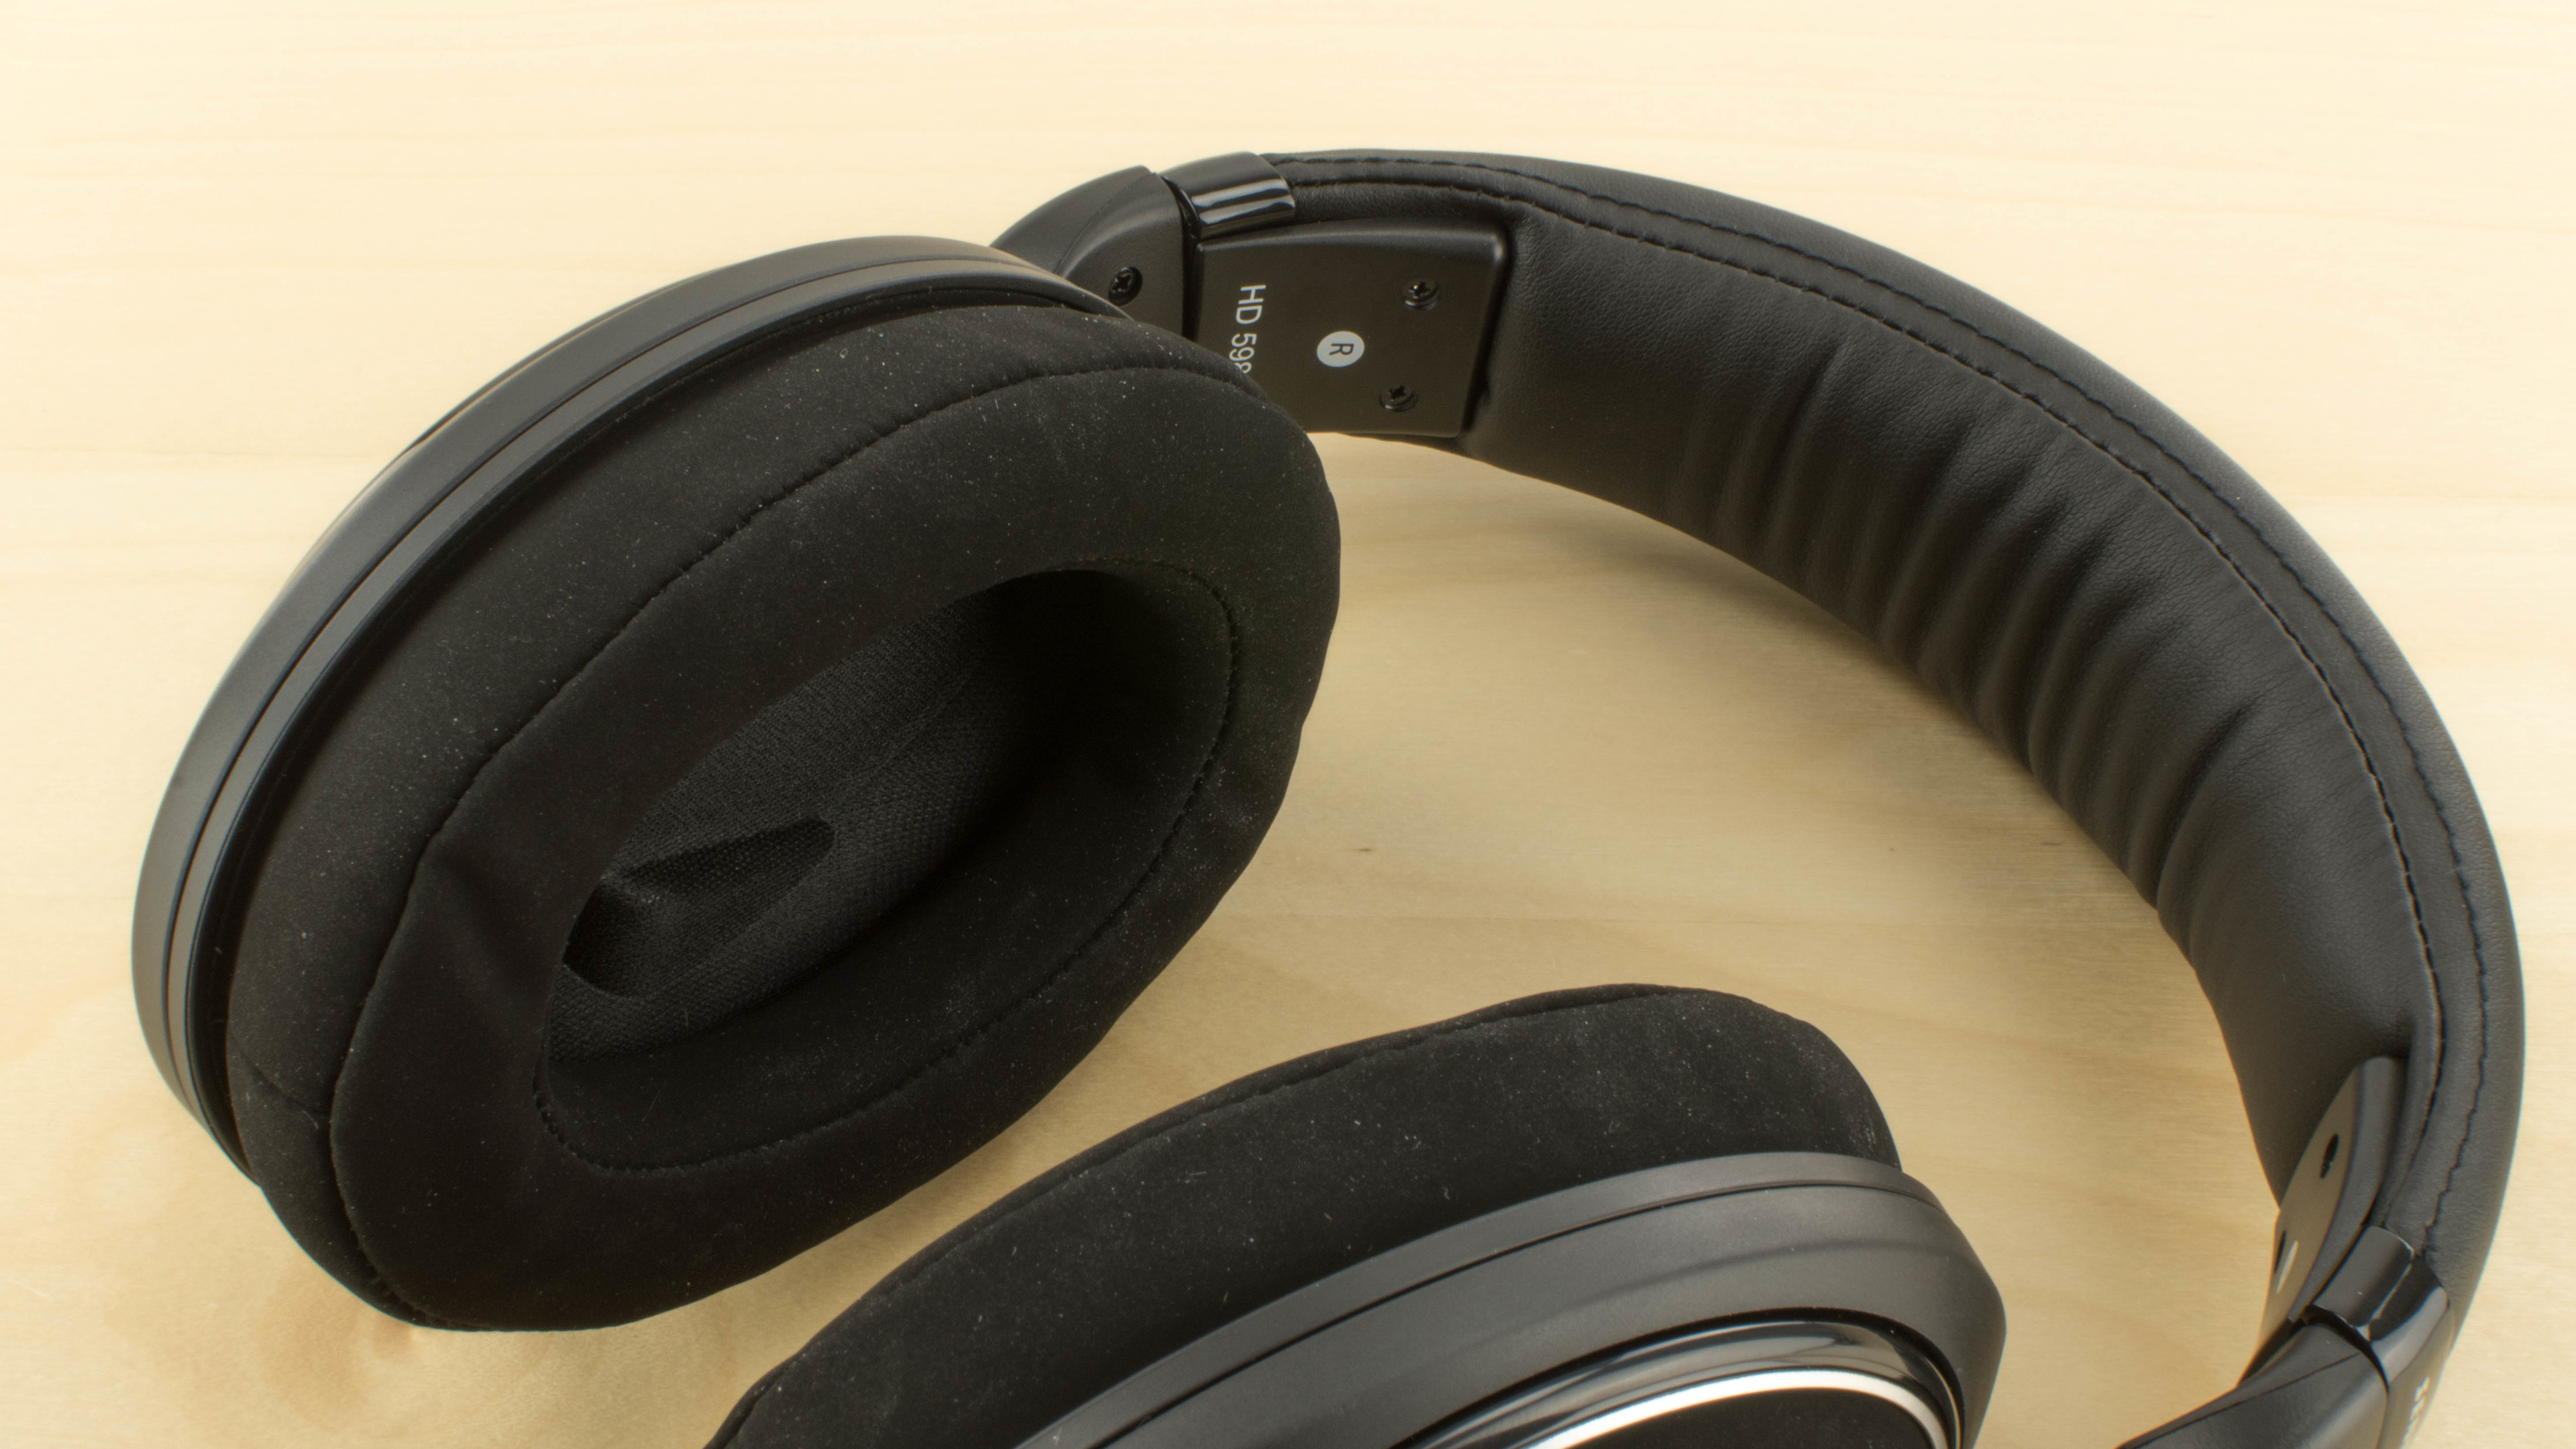 Sennheiser HD 598 Cs Comfort Picture